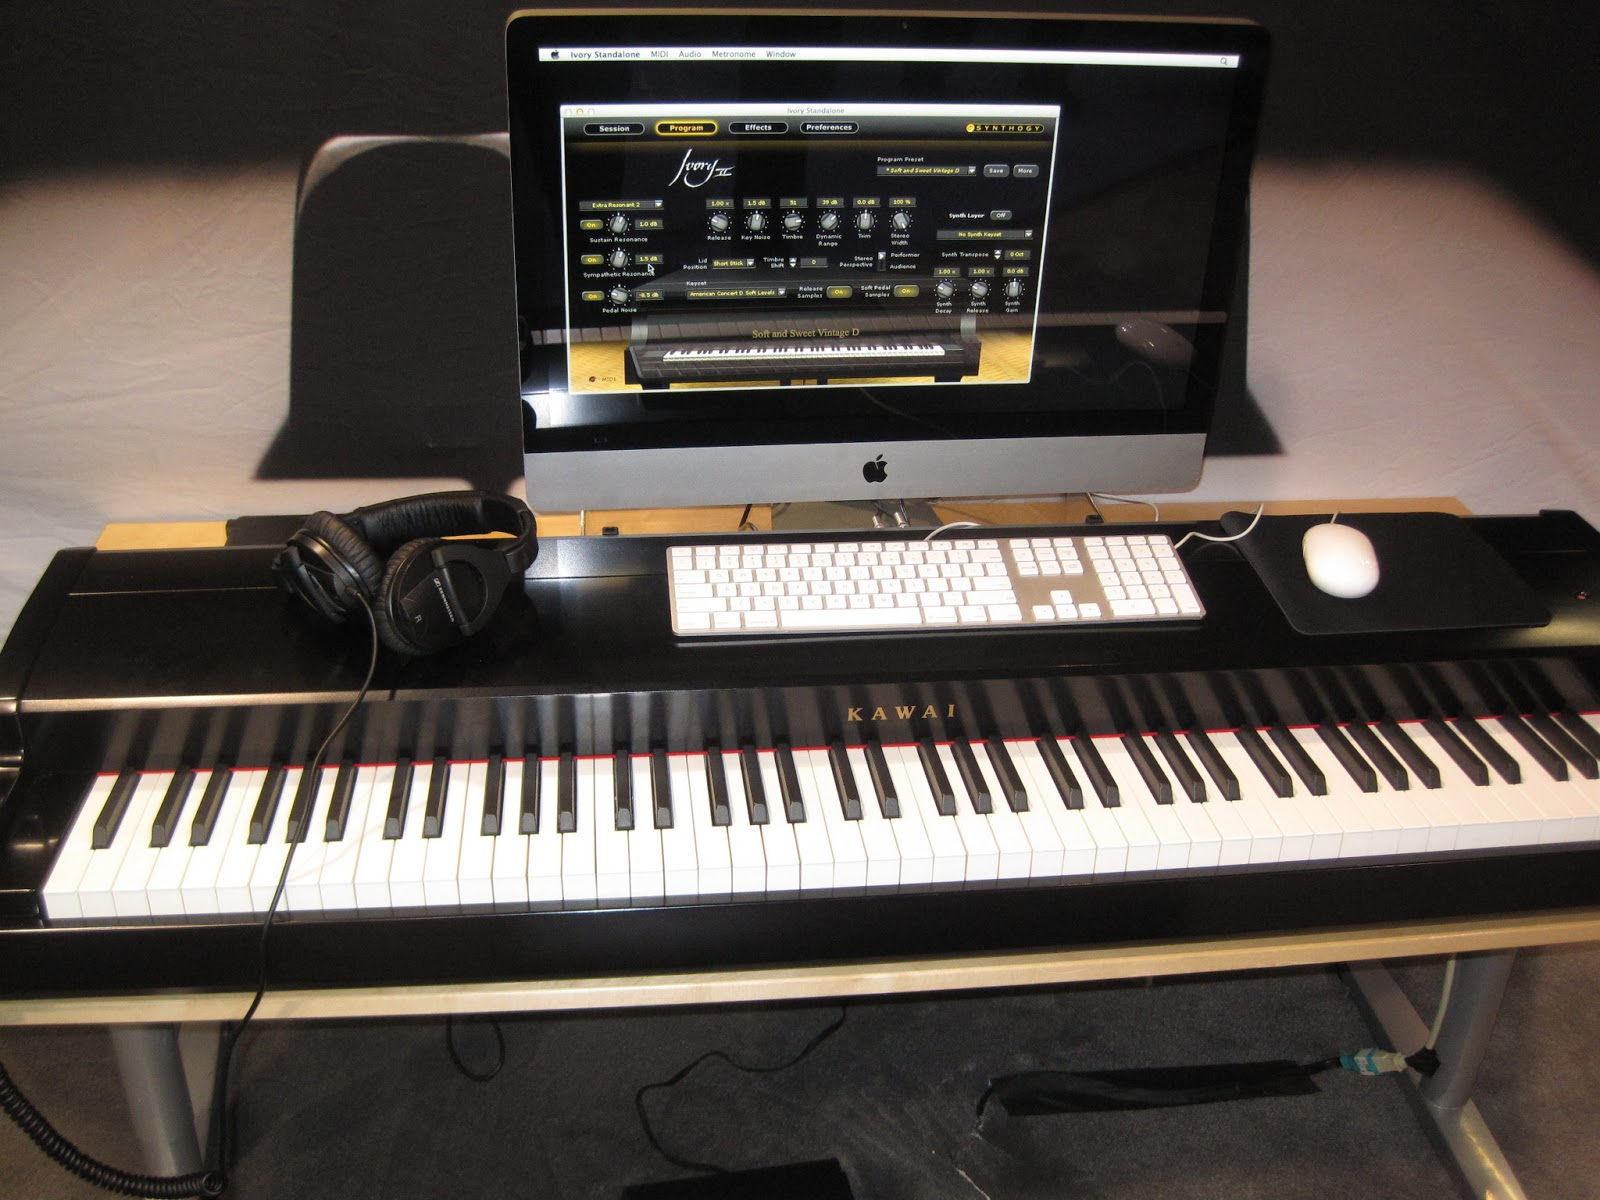 az piano reviews review kawai vpc1 digital piano controller outstanding built to use with. Black Bedroom Furniture Sets. Home Design Ideas